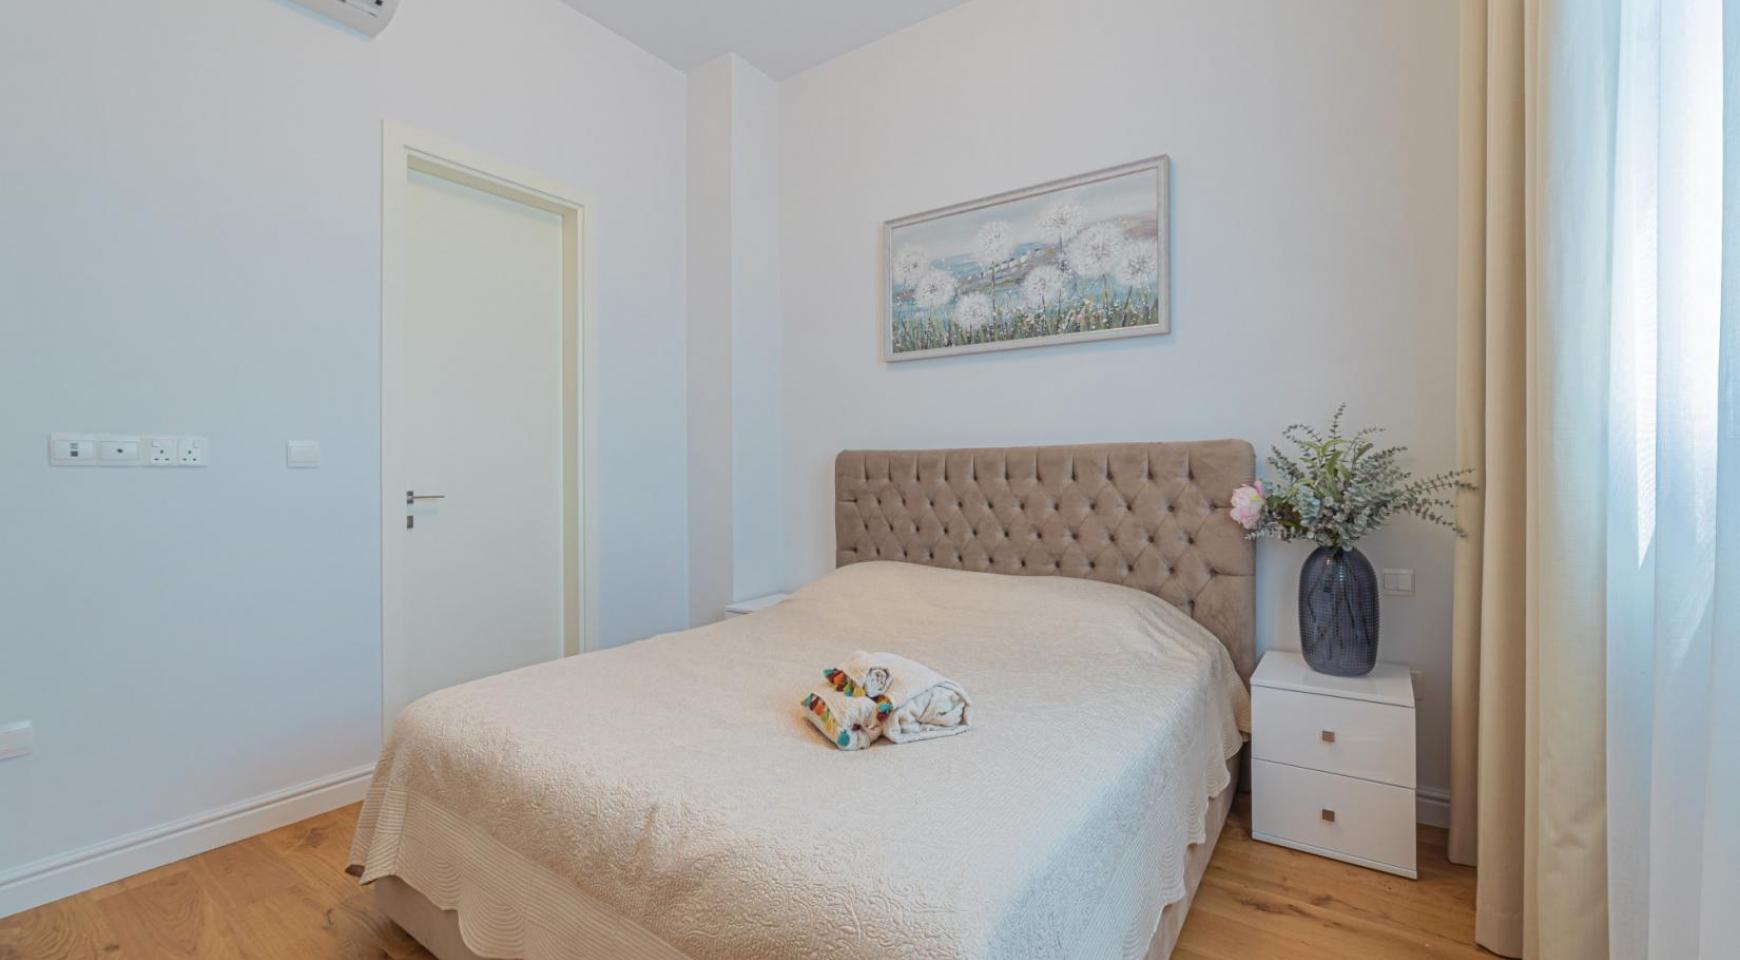 Hortensia Residence, Apt. 201. 2 Bedroom Apartment within a New Complex near the Sea  - 61